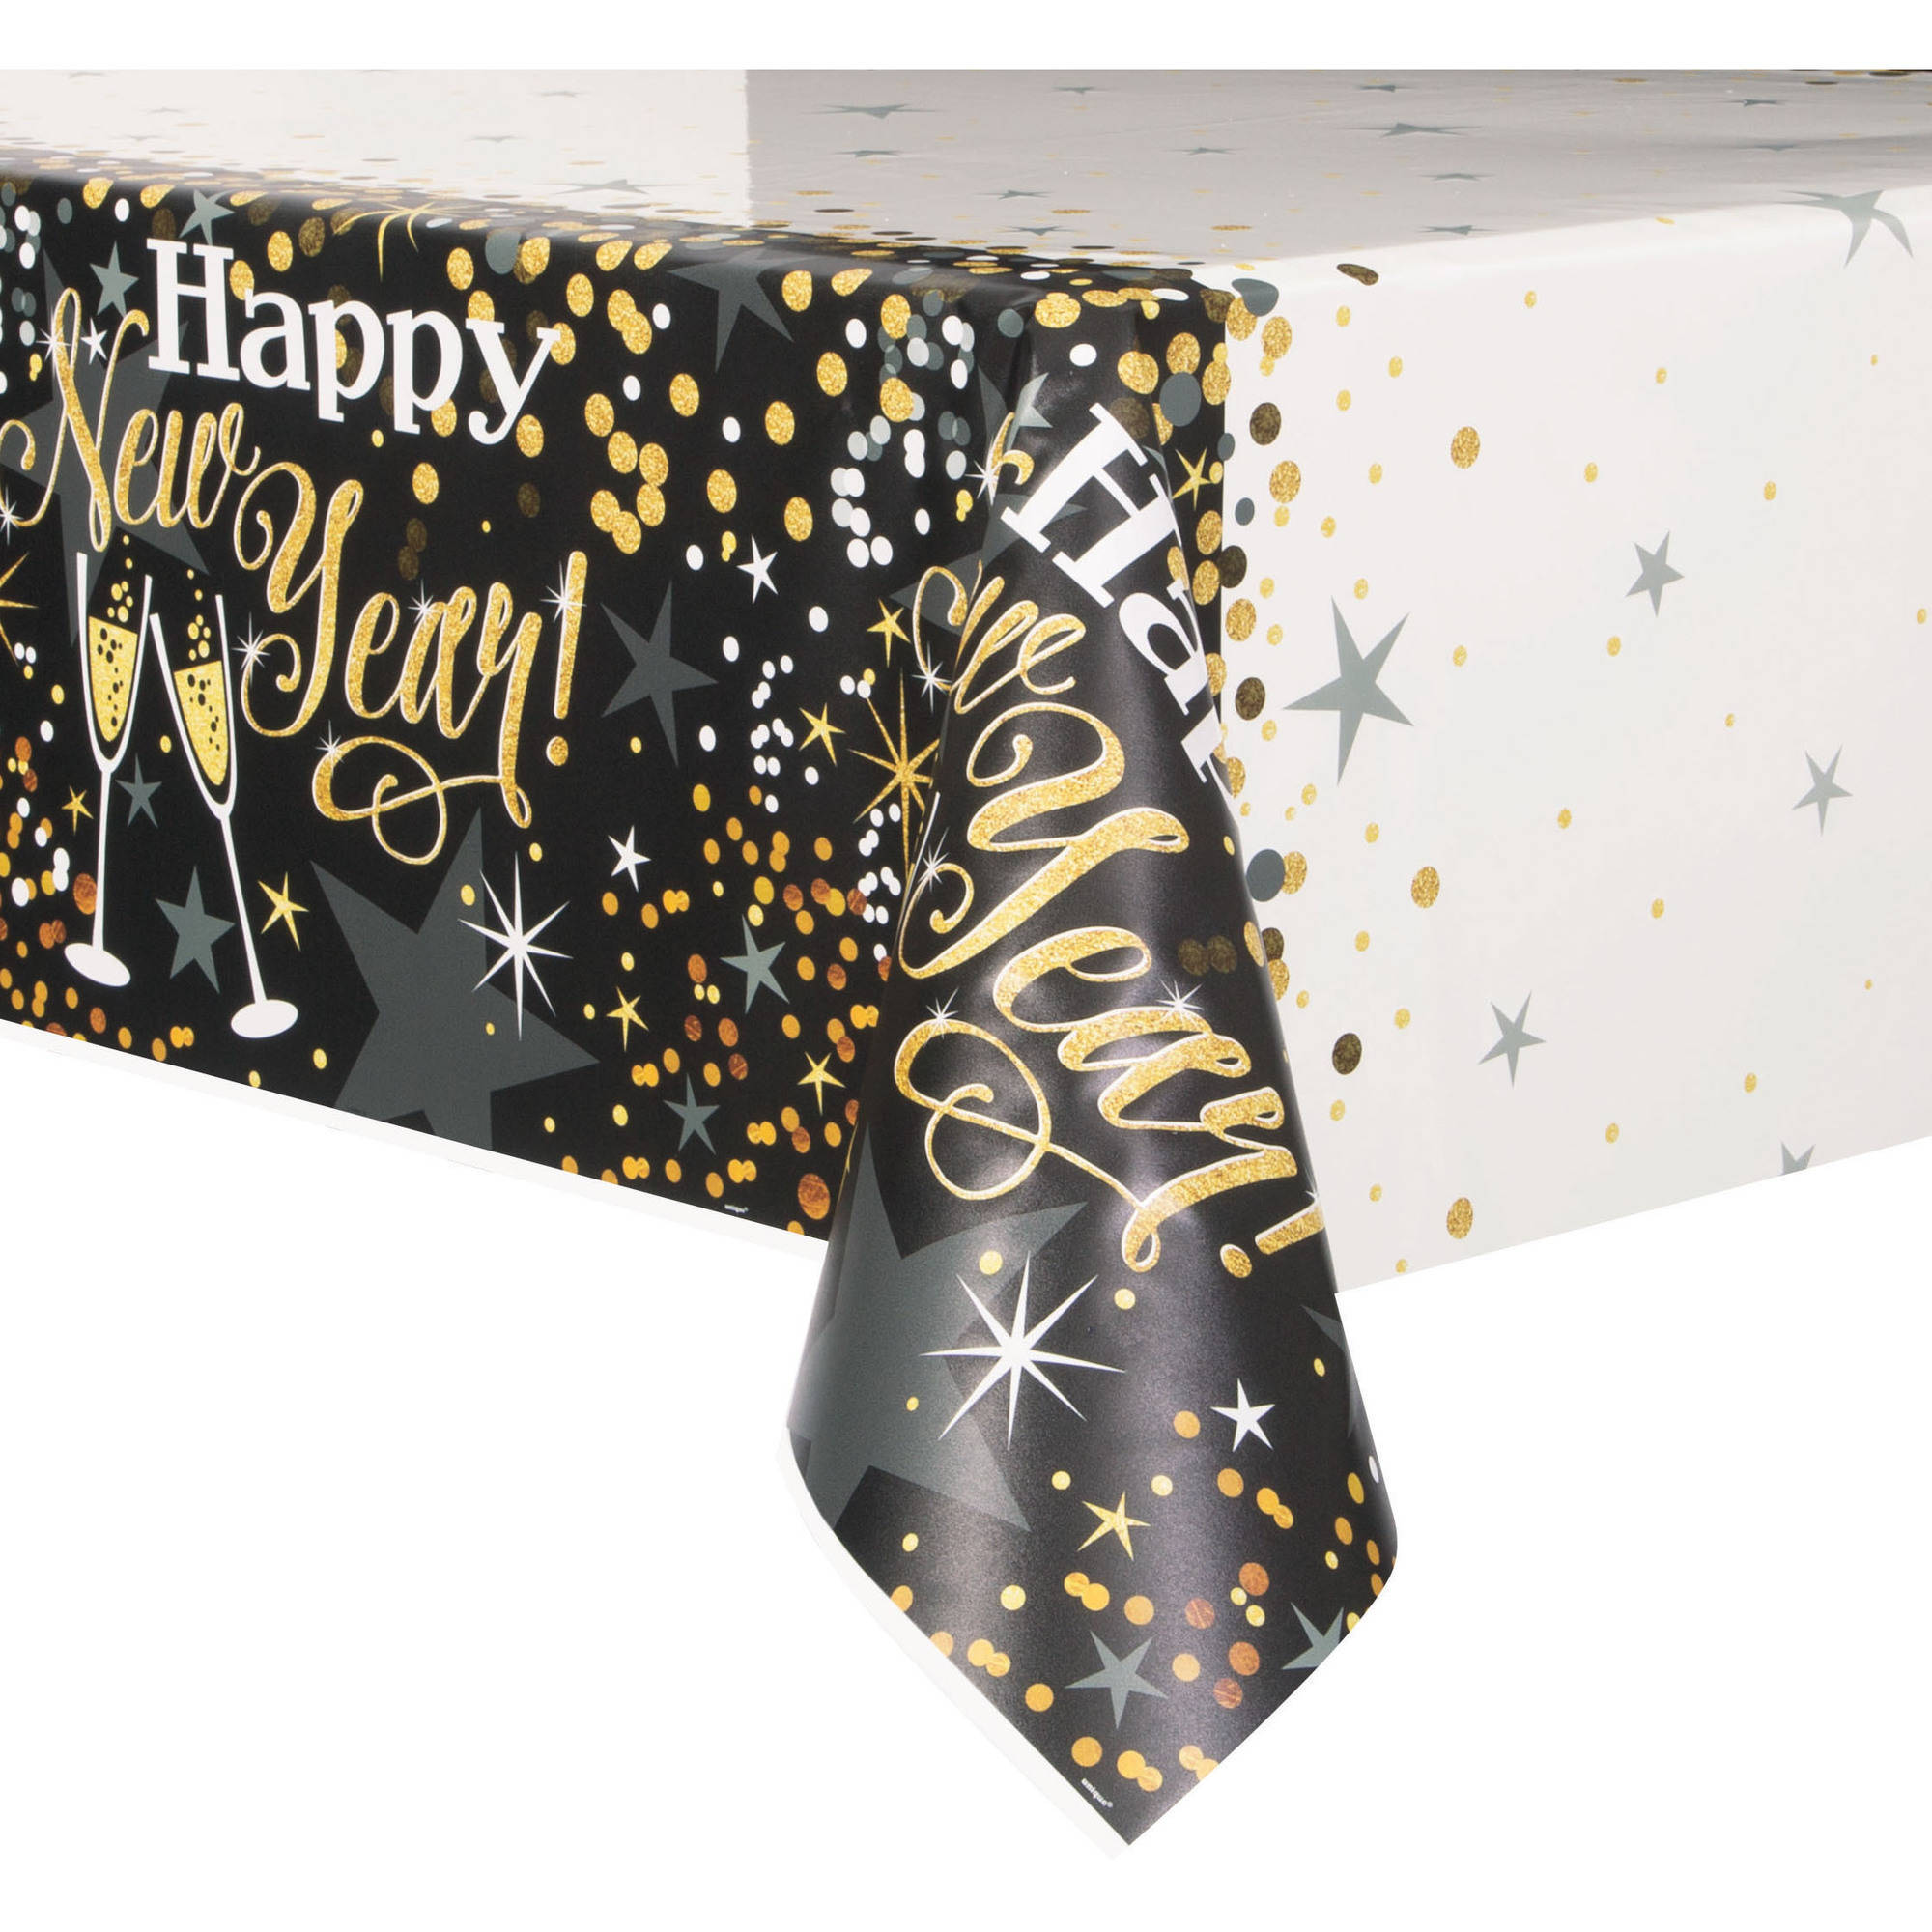 "(3 Pack) Plastic Glittering New Years Eve Table Cover, 84"" x 54"""